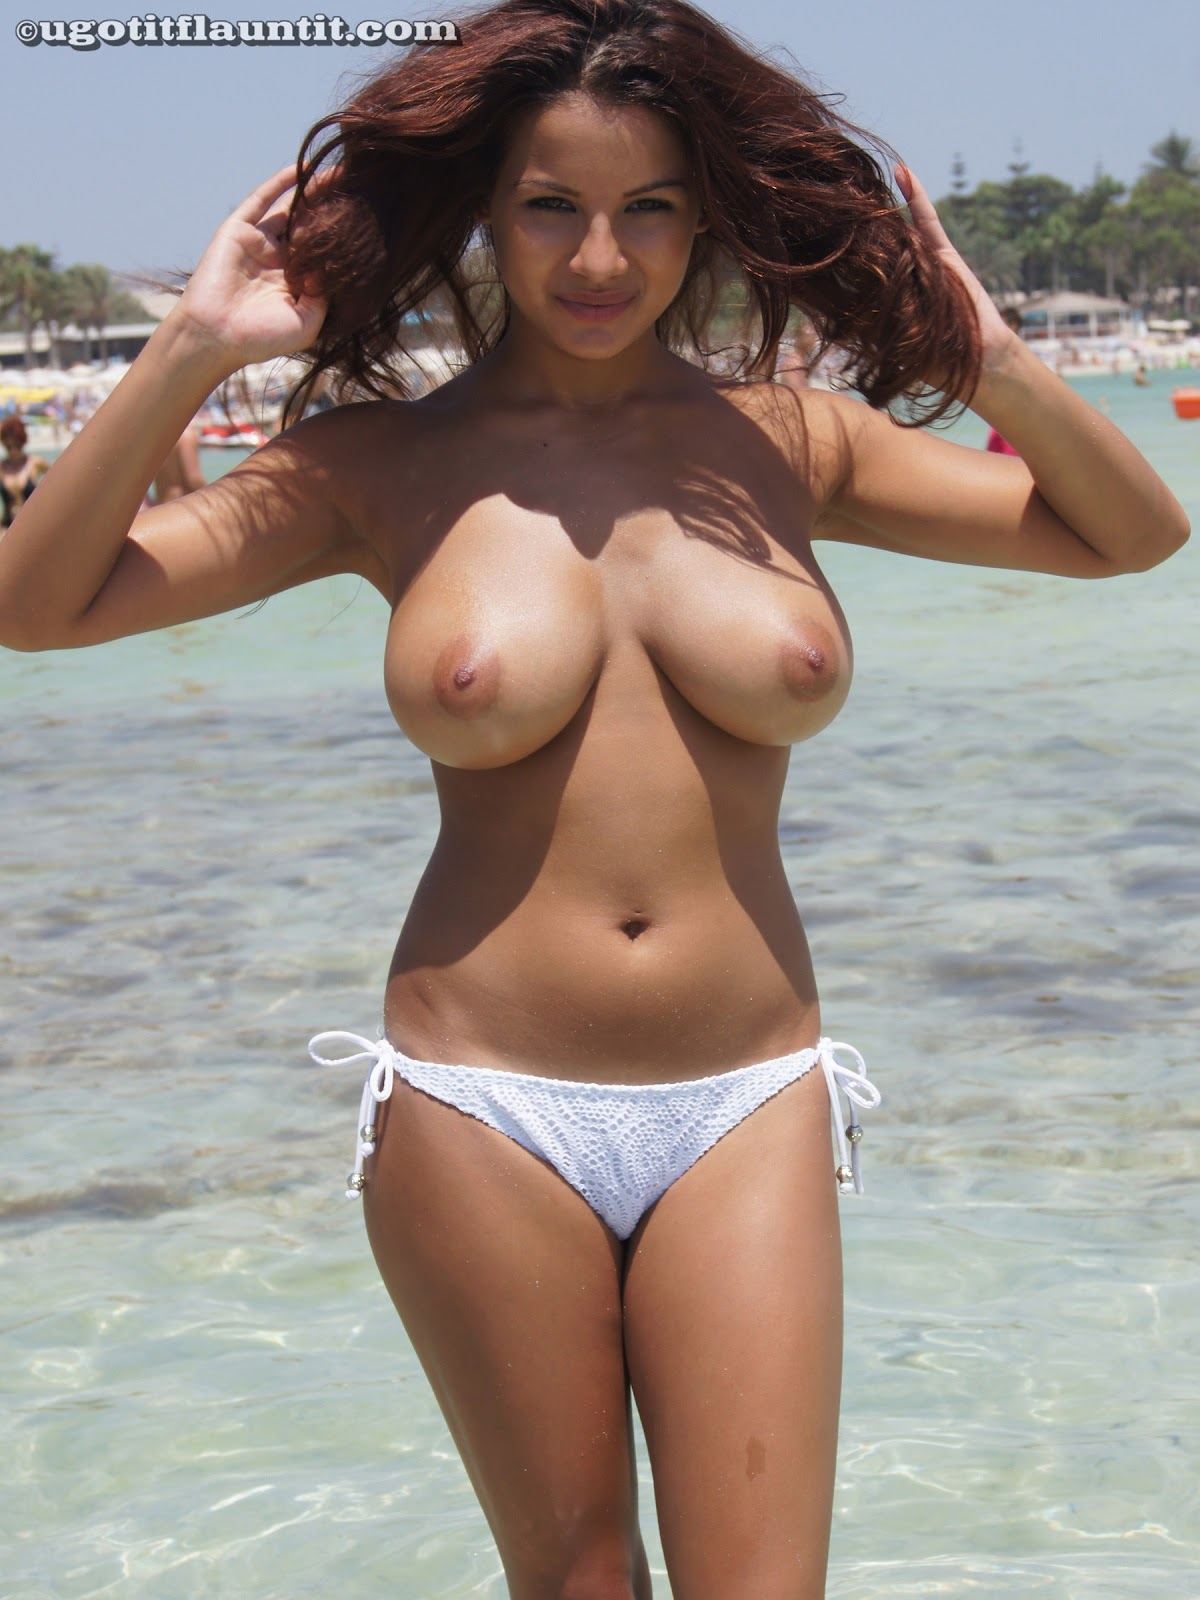 This huge hot boobs topless on the beach